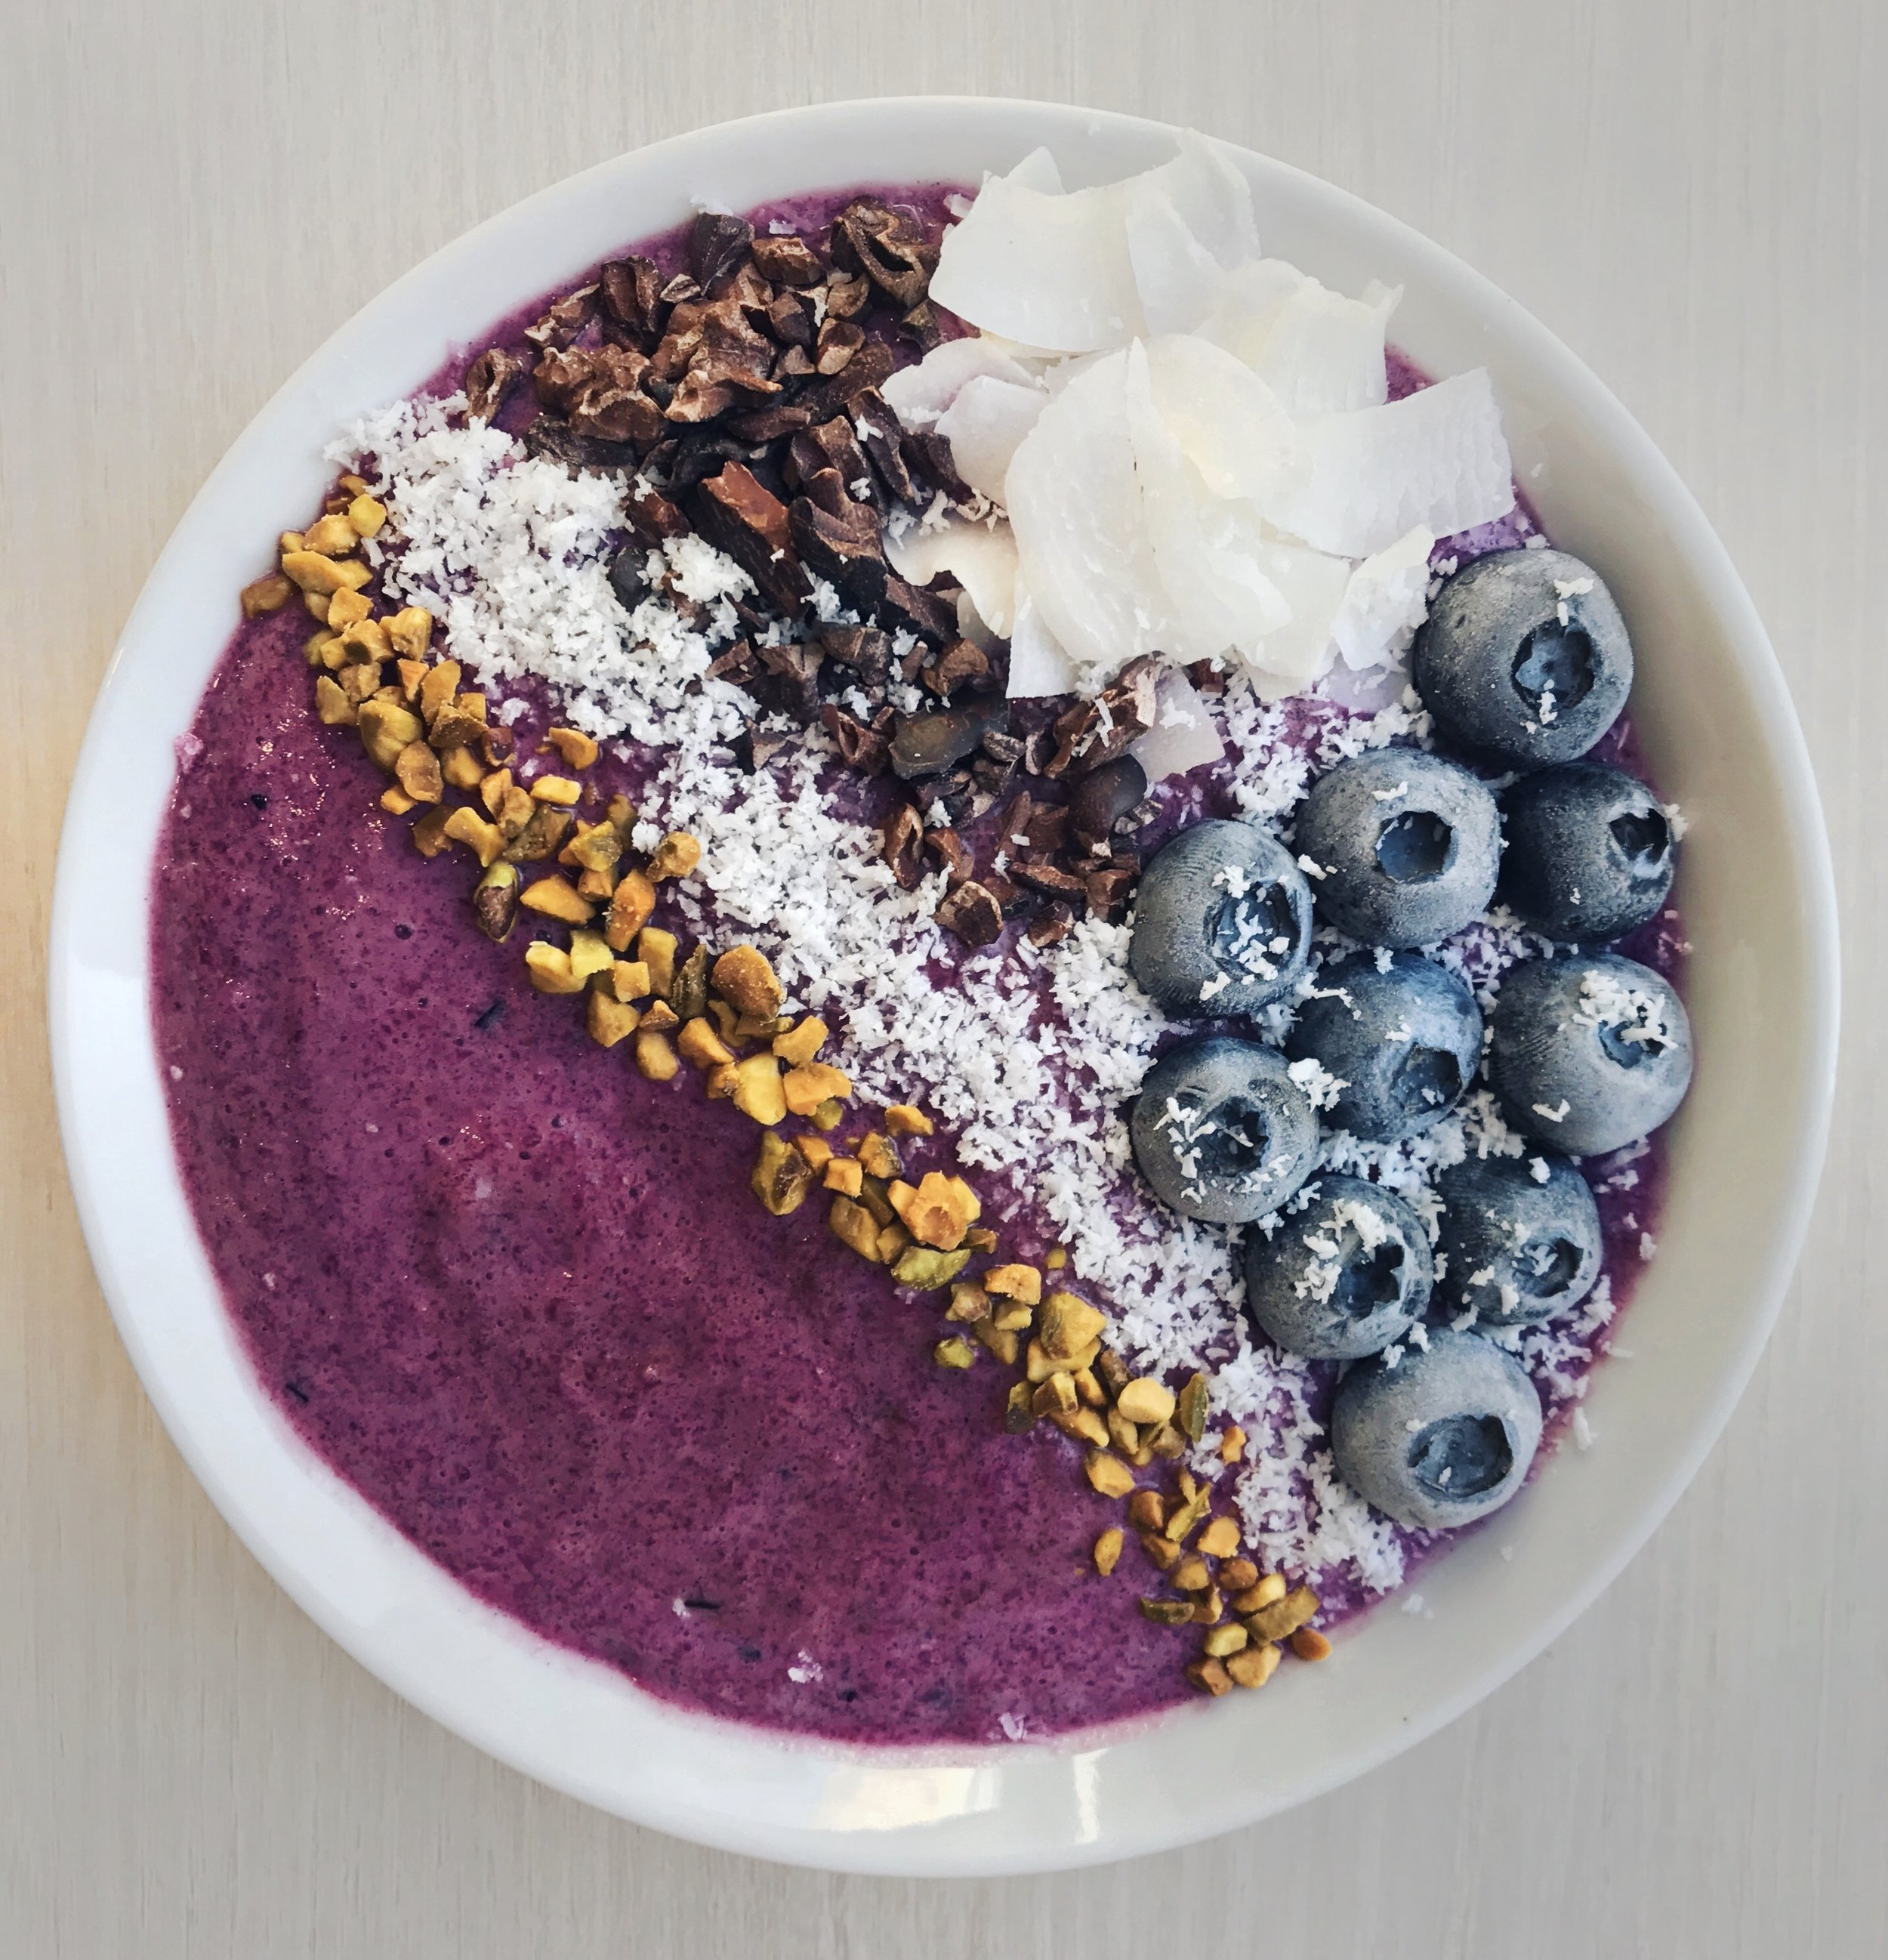 Purple Smoothie Bowl - 2 bananas + 1 cup @driscollsberryblueberries + 1/2 cup raspberries +1 cup of cold beets + 1 scoop collagen peptides + 1 tsp @crazyrichardspbpeanut butter all blended up together.Topped with bee pollen, coconut powder, cacao nibs, coconut flakes and freshly frozen blueberries.